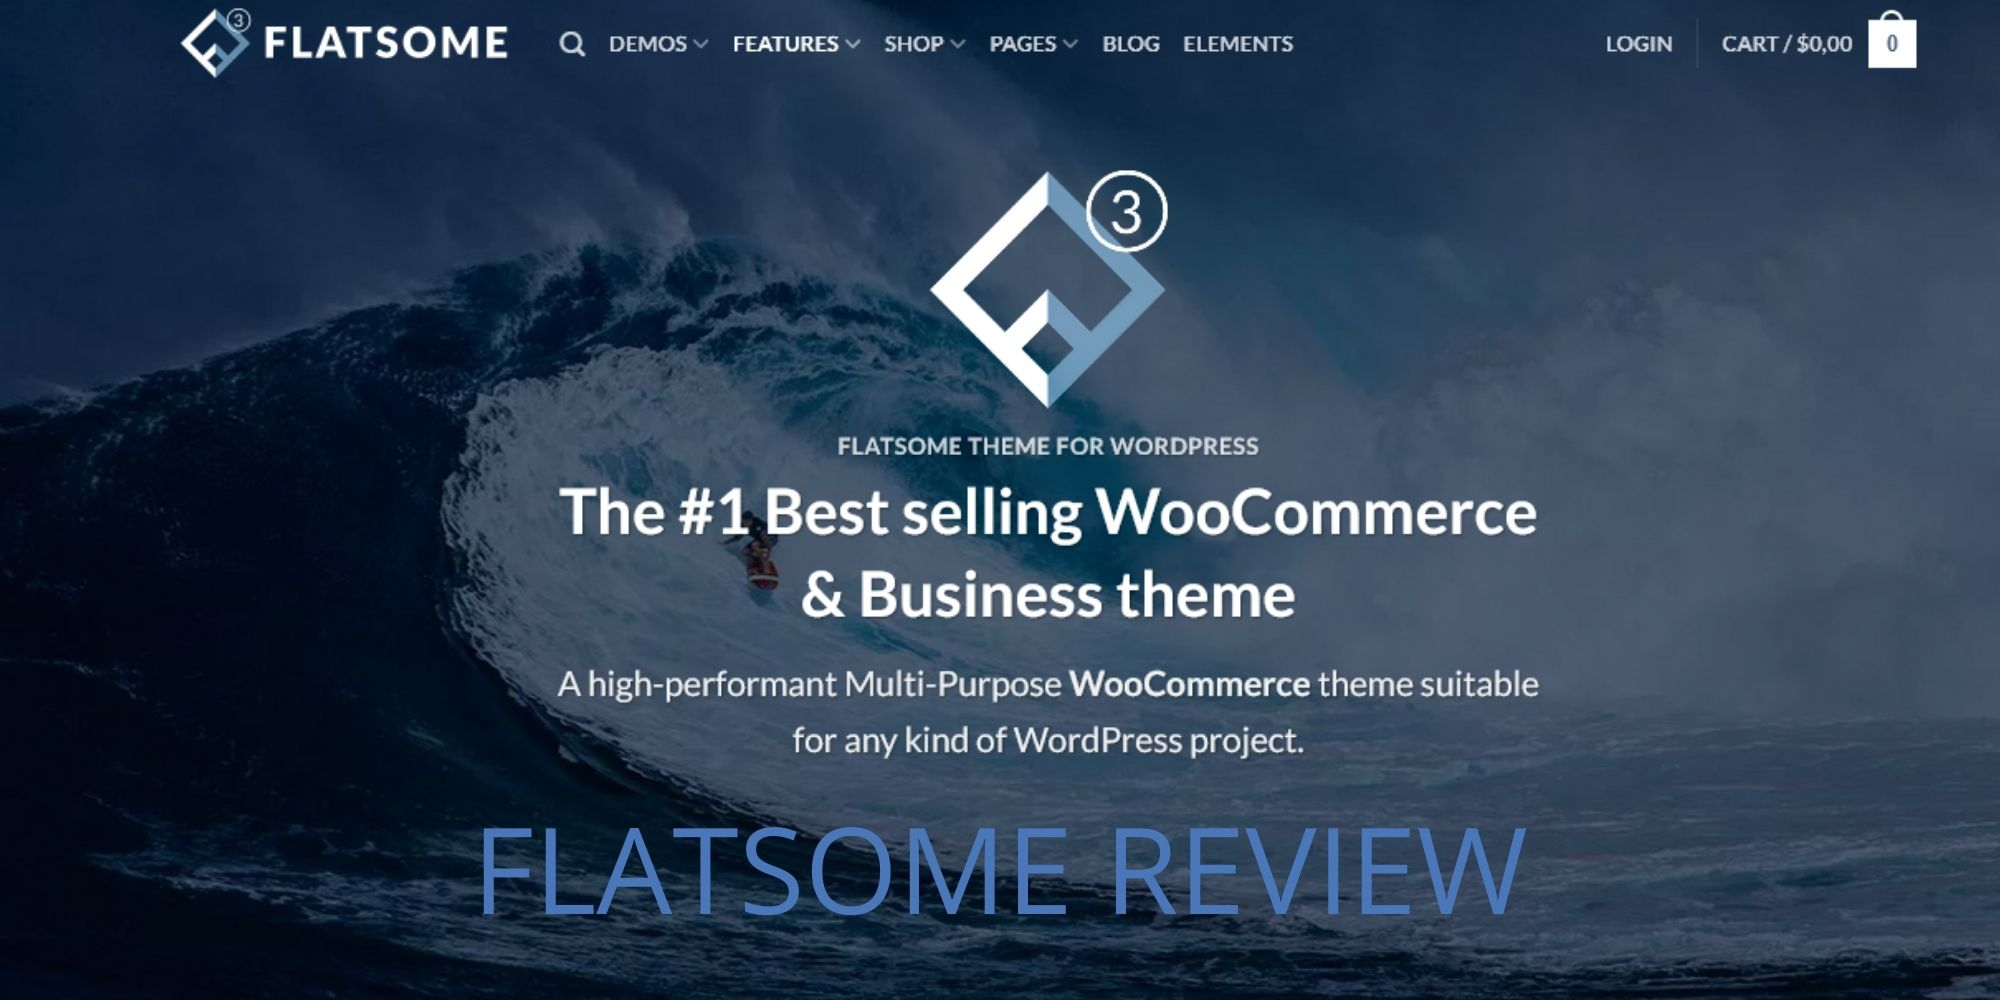 Flatsome Review